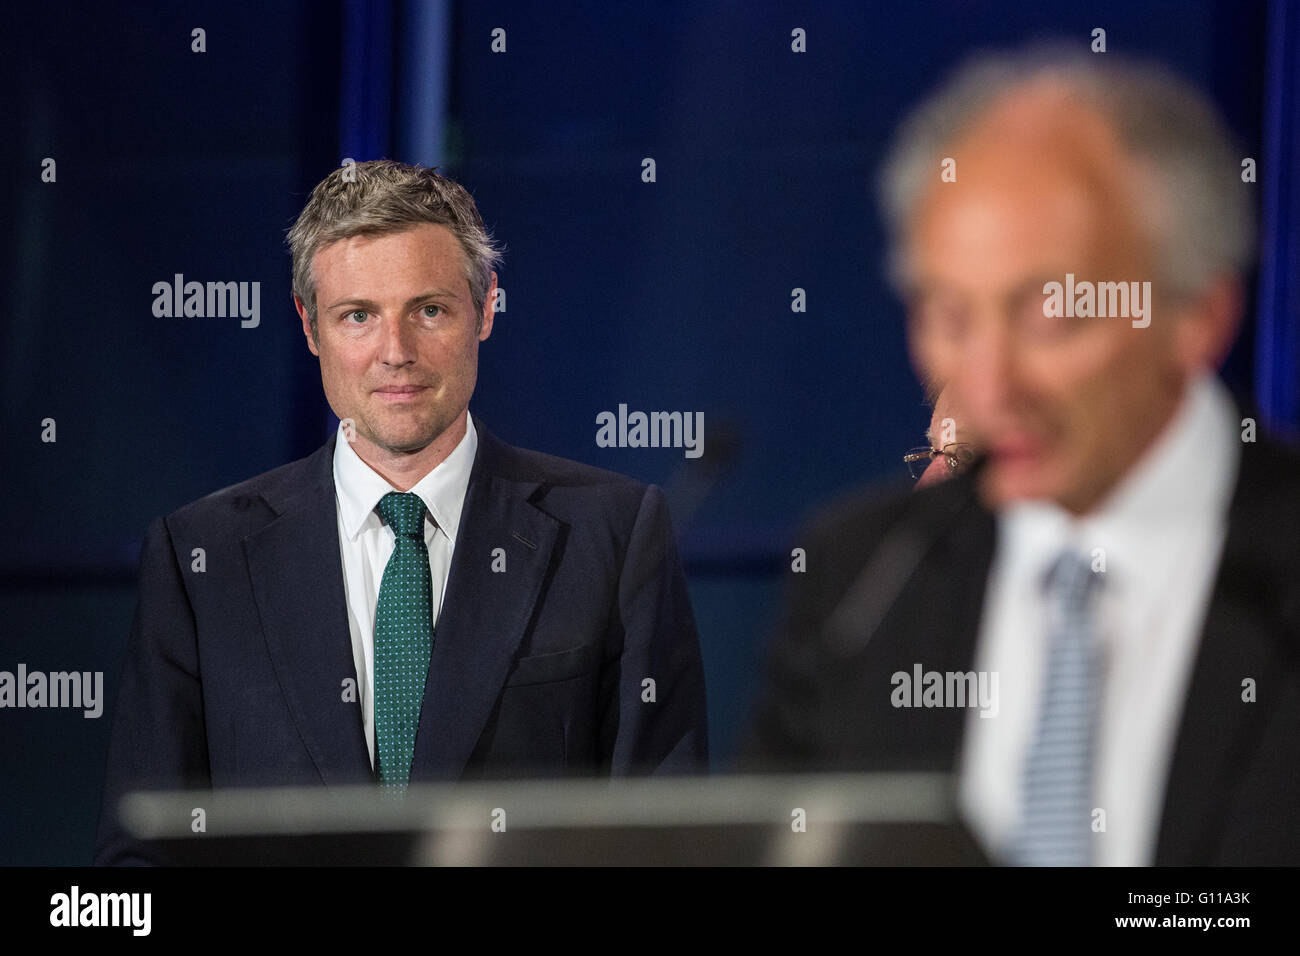 London, UK. 7th May, 2016. Conservative candidate Zac Goldsmith listens to the announcement of the results of the - Stock Image